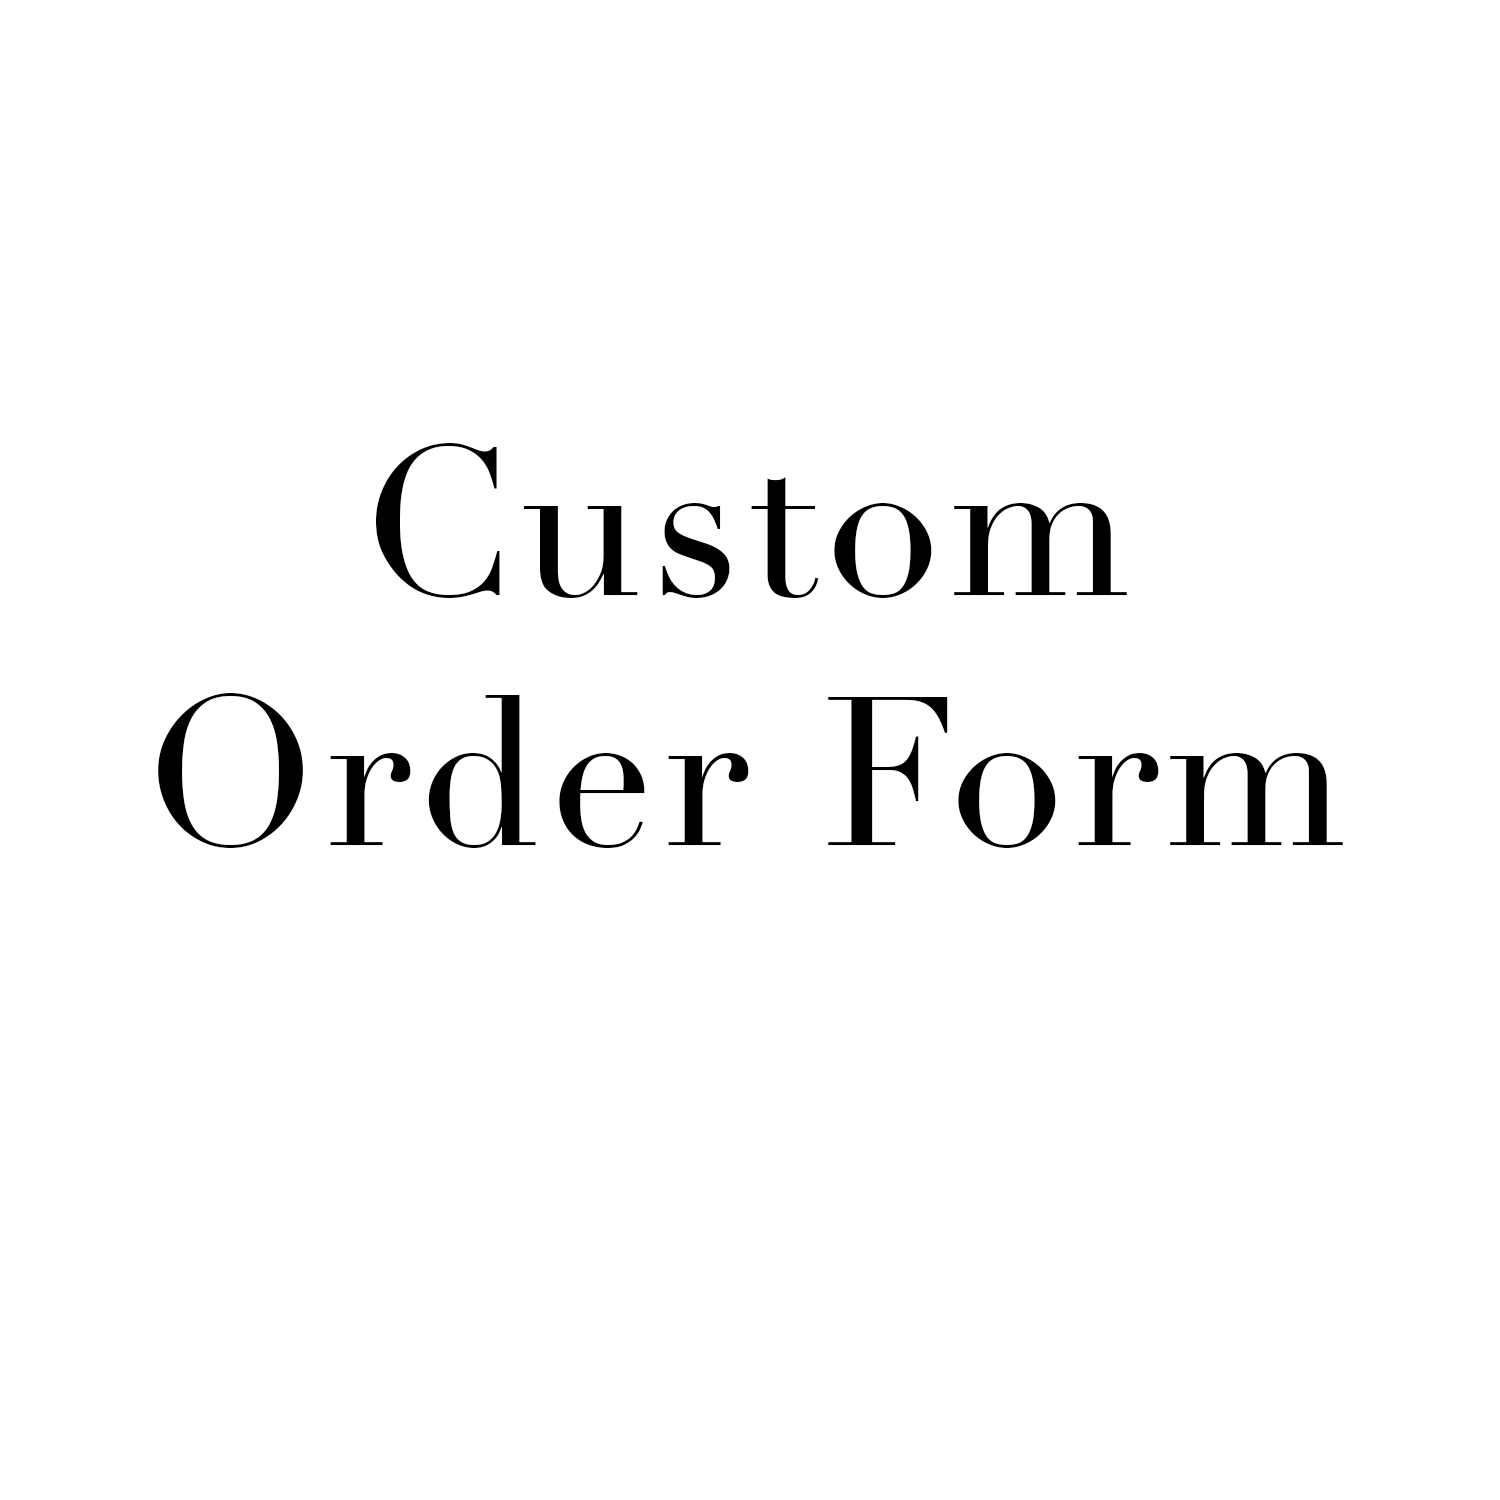 Custom Order Form.png